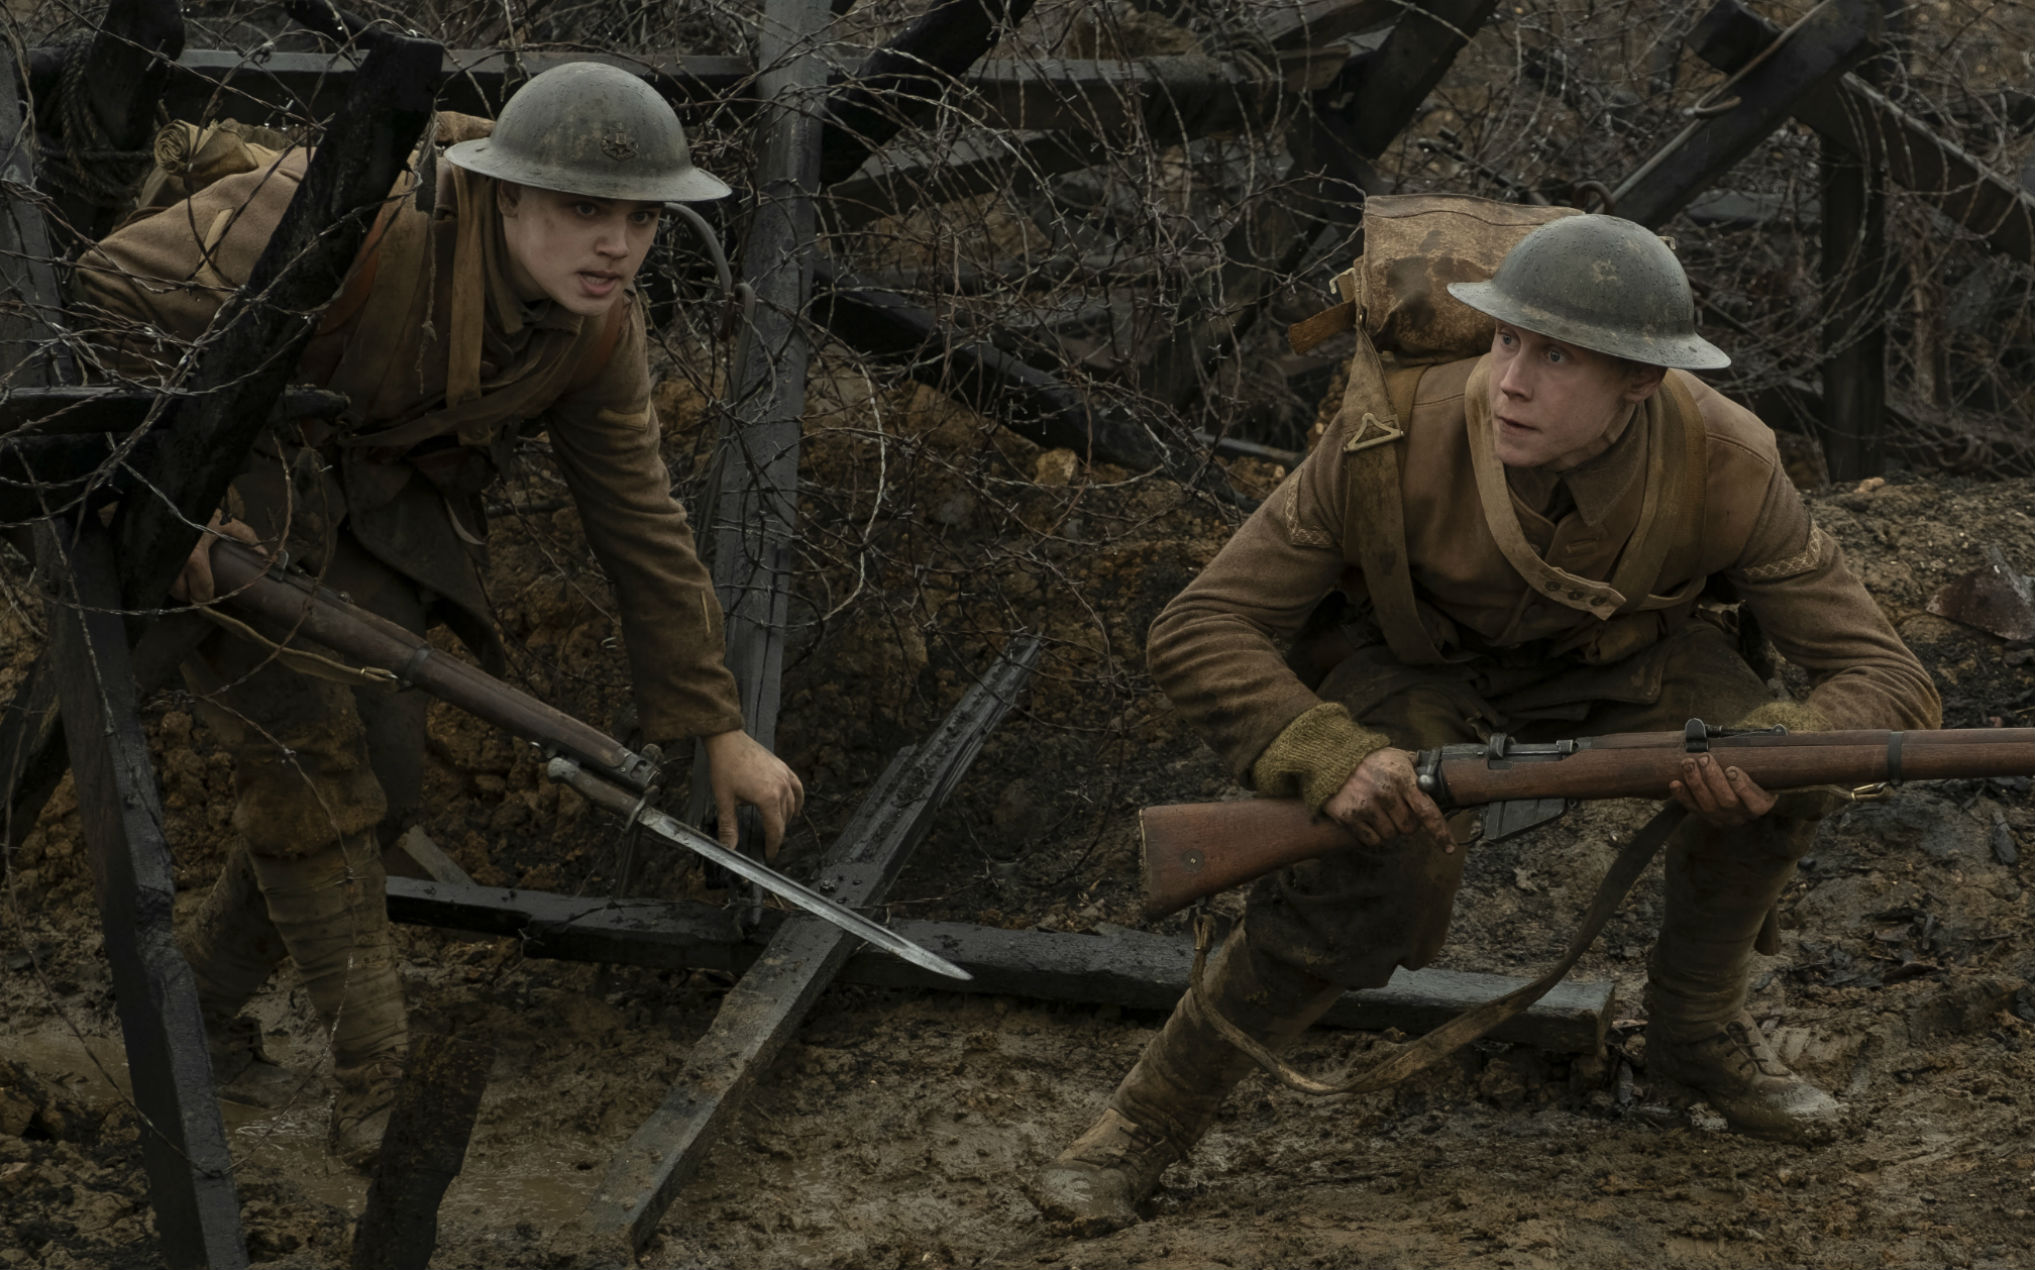 """'1917' gets huge praise in first reactions: """"The best war film since 'Saving Private Ryan'"""""""